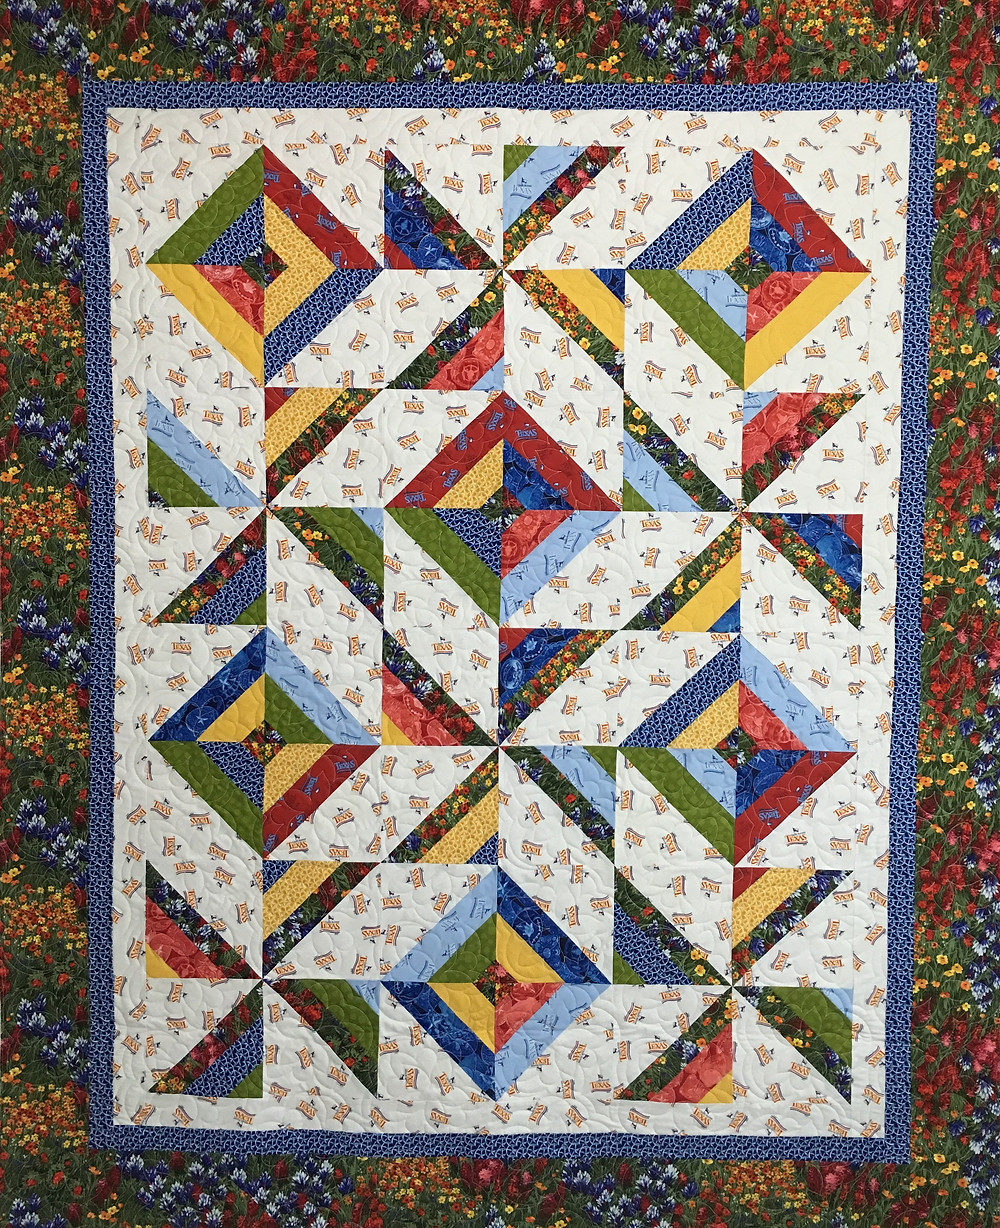 Texas Quilt by Sheila Stuckey